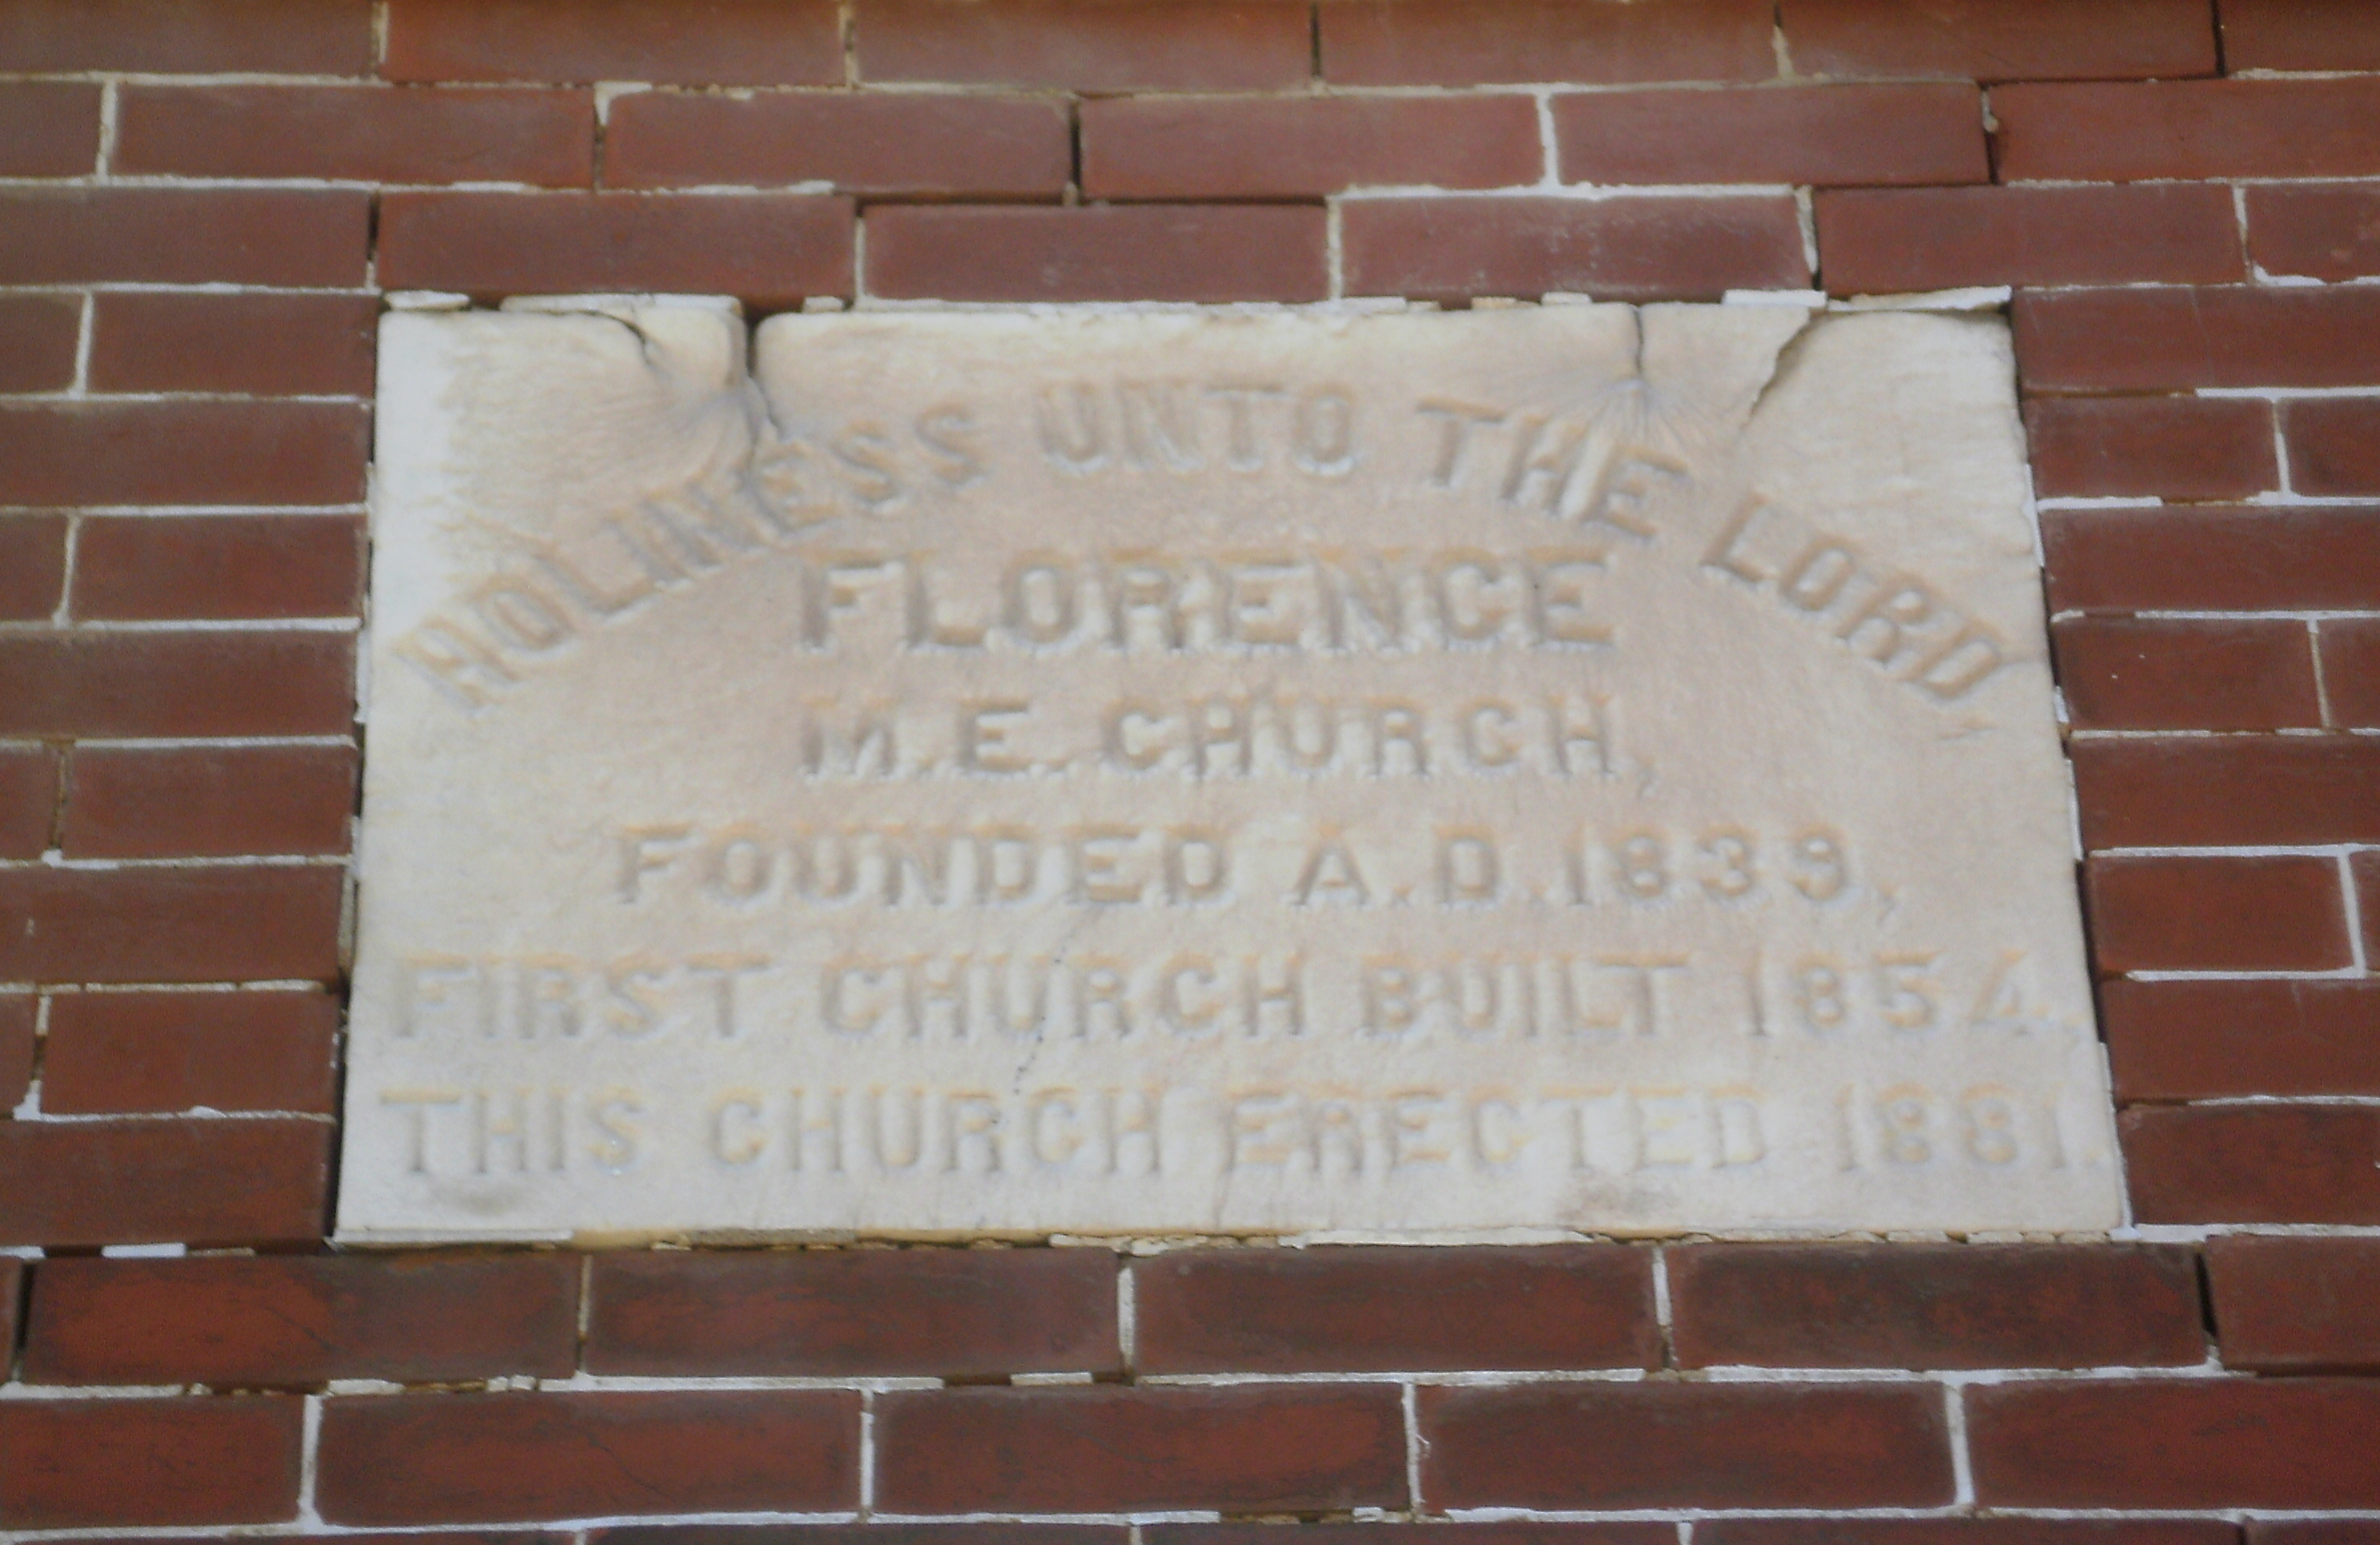 Florence M. E. Church Marker